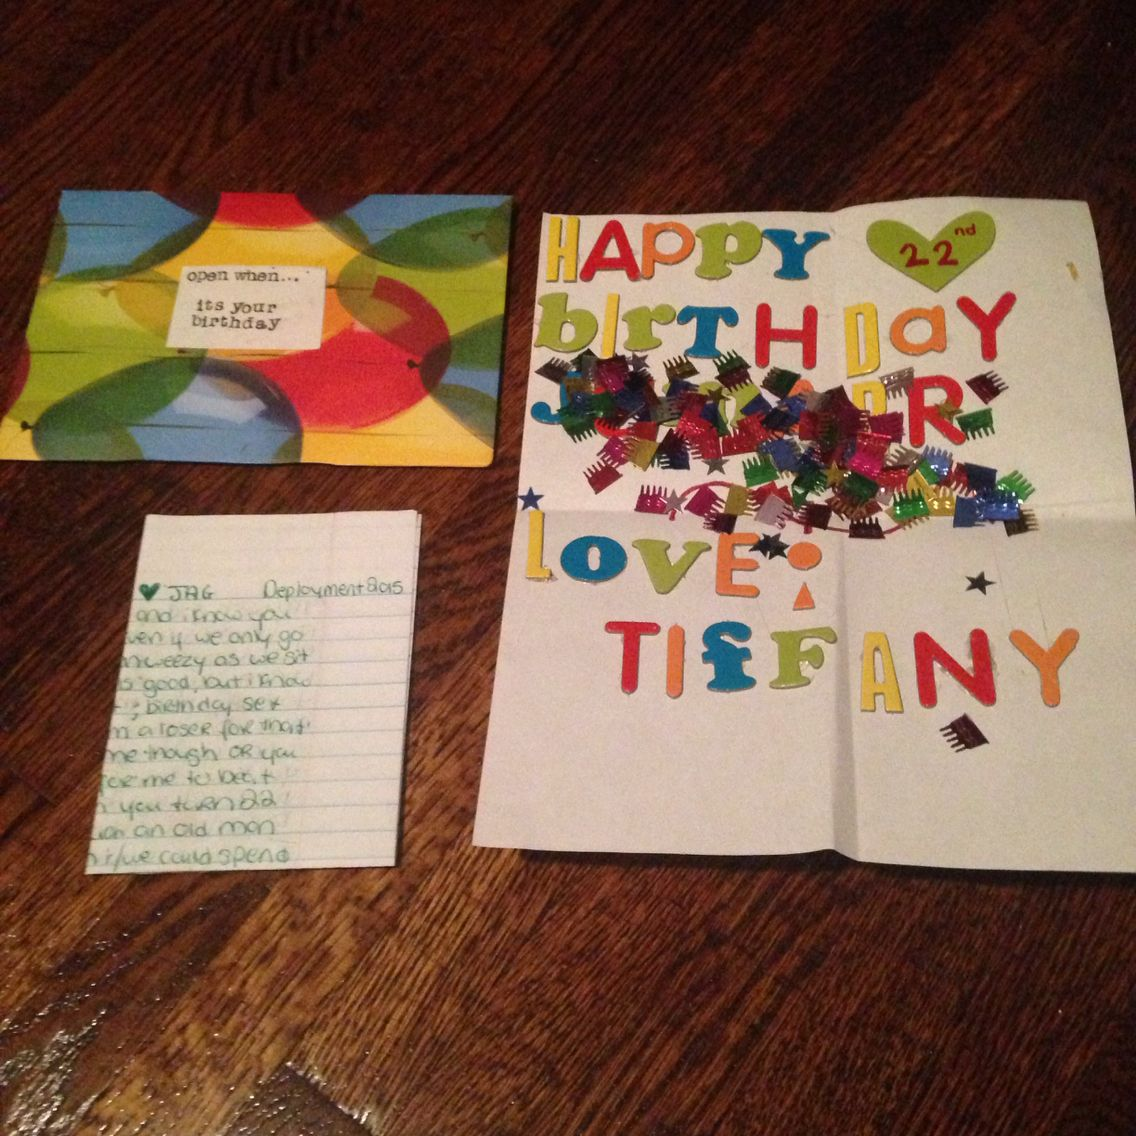 Open When It's Your Birthday- A Better Letter, A Happy